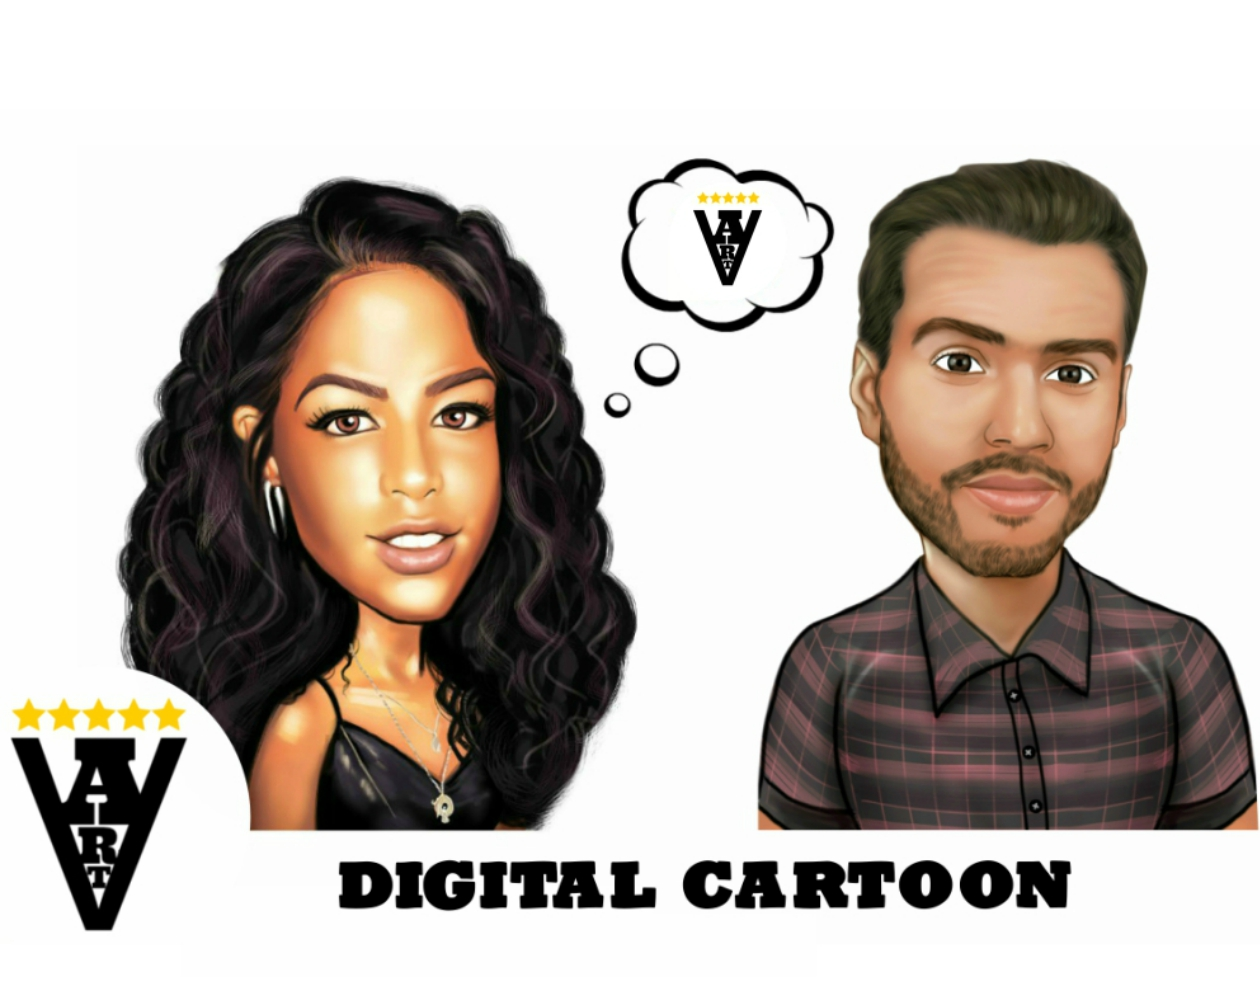 Digital Caricature or Cartoon from Photo